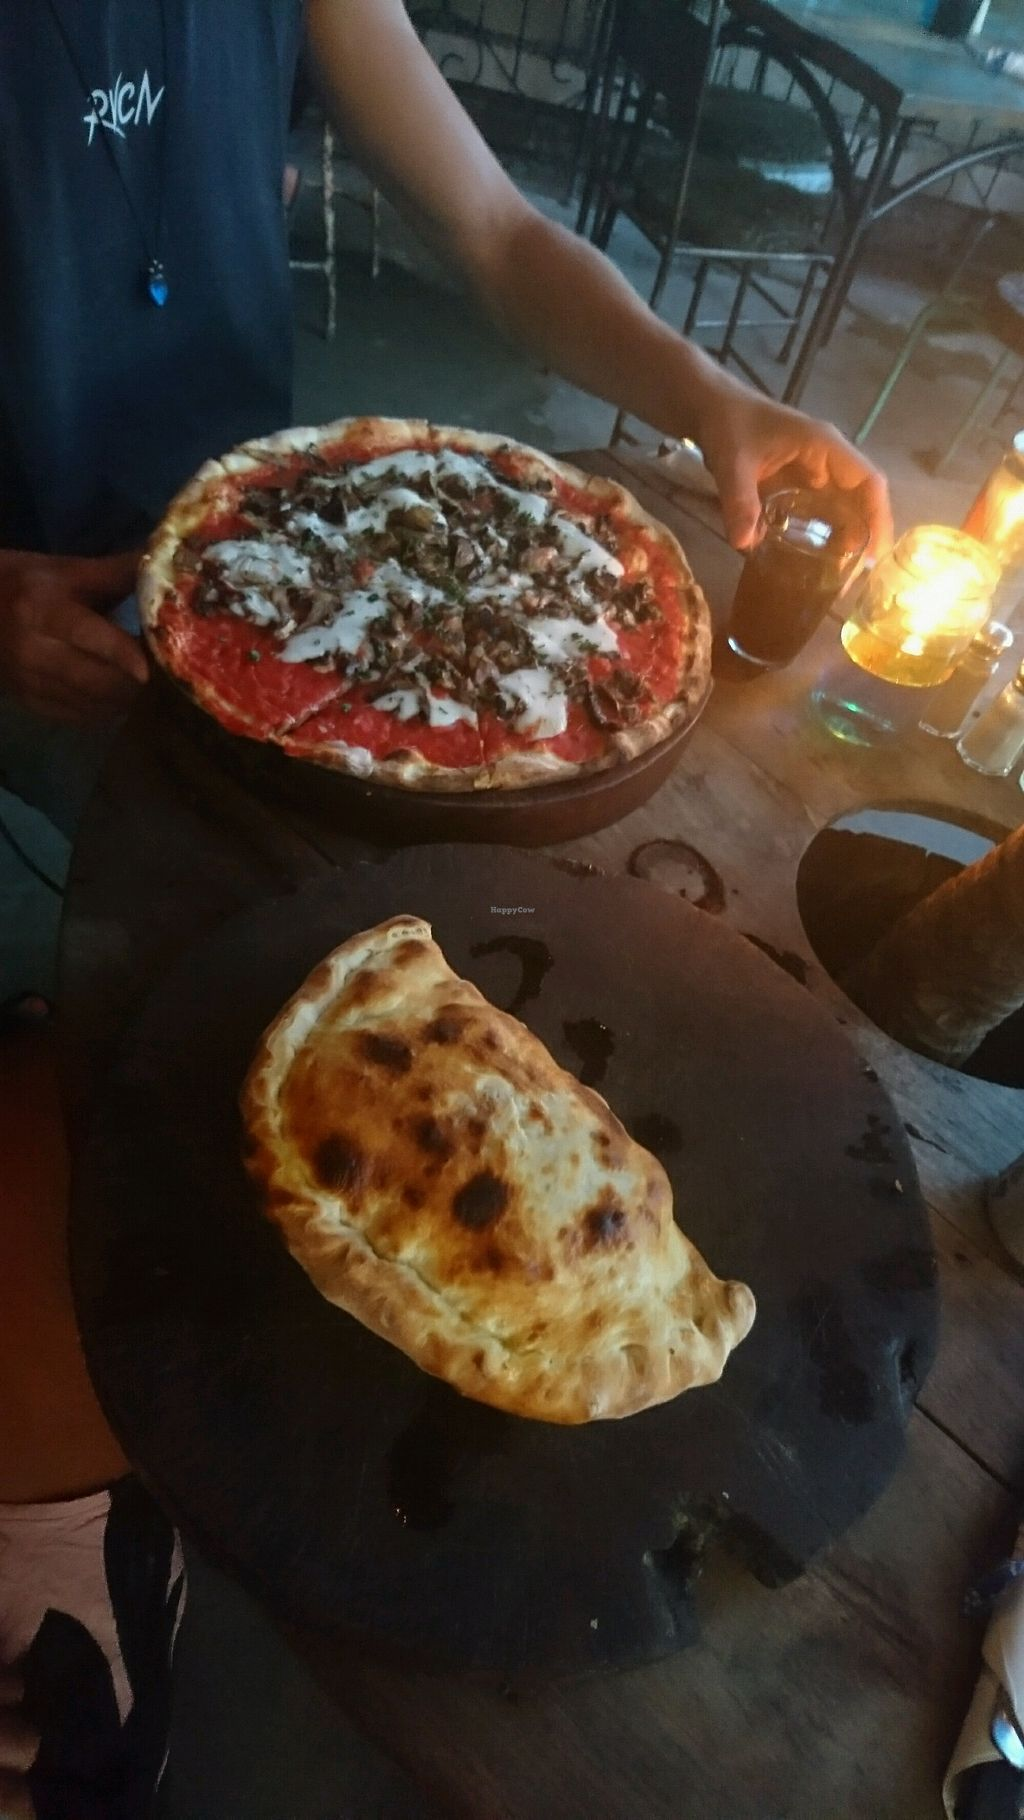 """Photo of Baracca Ristorante Pizzeria   by <a href=""""/members/profile/MagganStepien"""">MagganStepien</a> <br/>fungi and calzone <br/> April 11, 2018  - <a href='/contact/abuse/image/85615/383885'>Report</a>"""